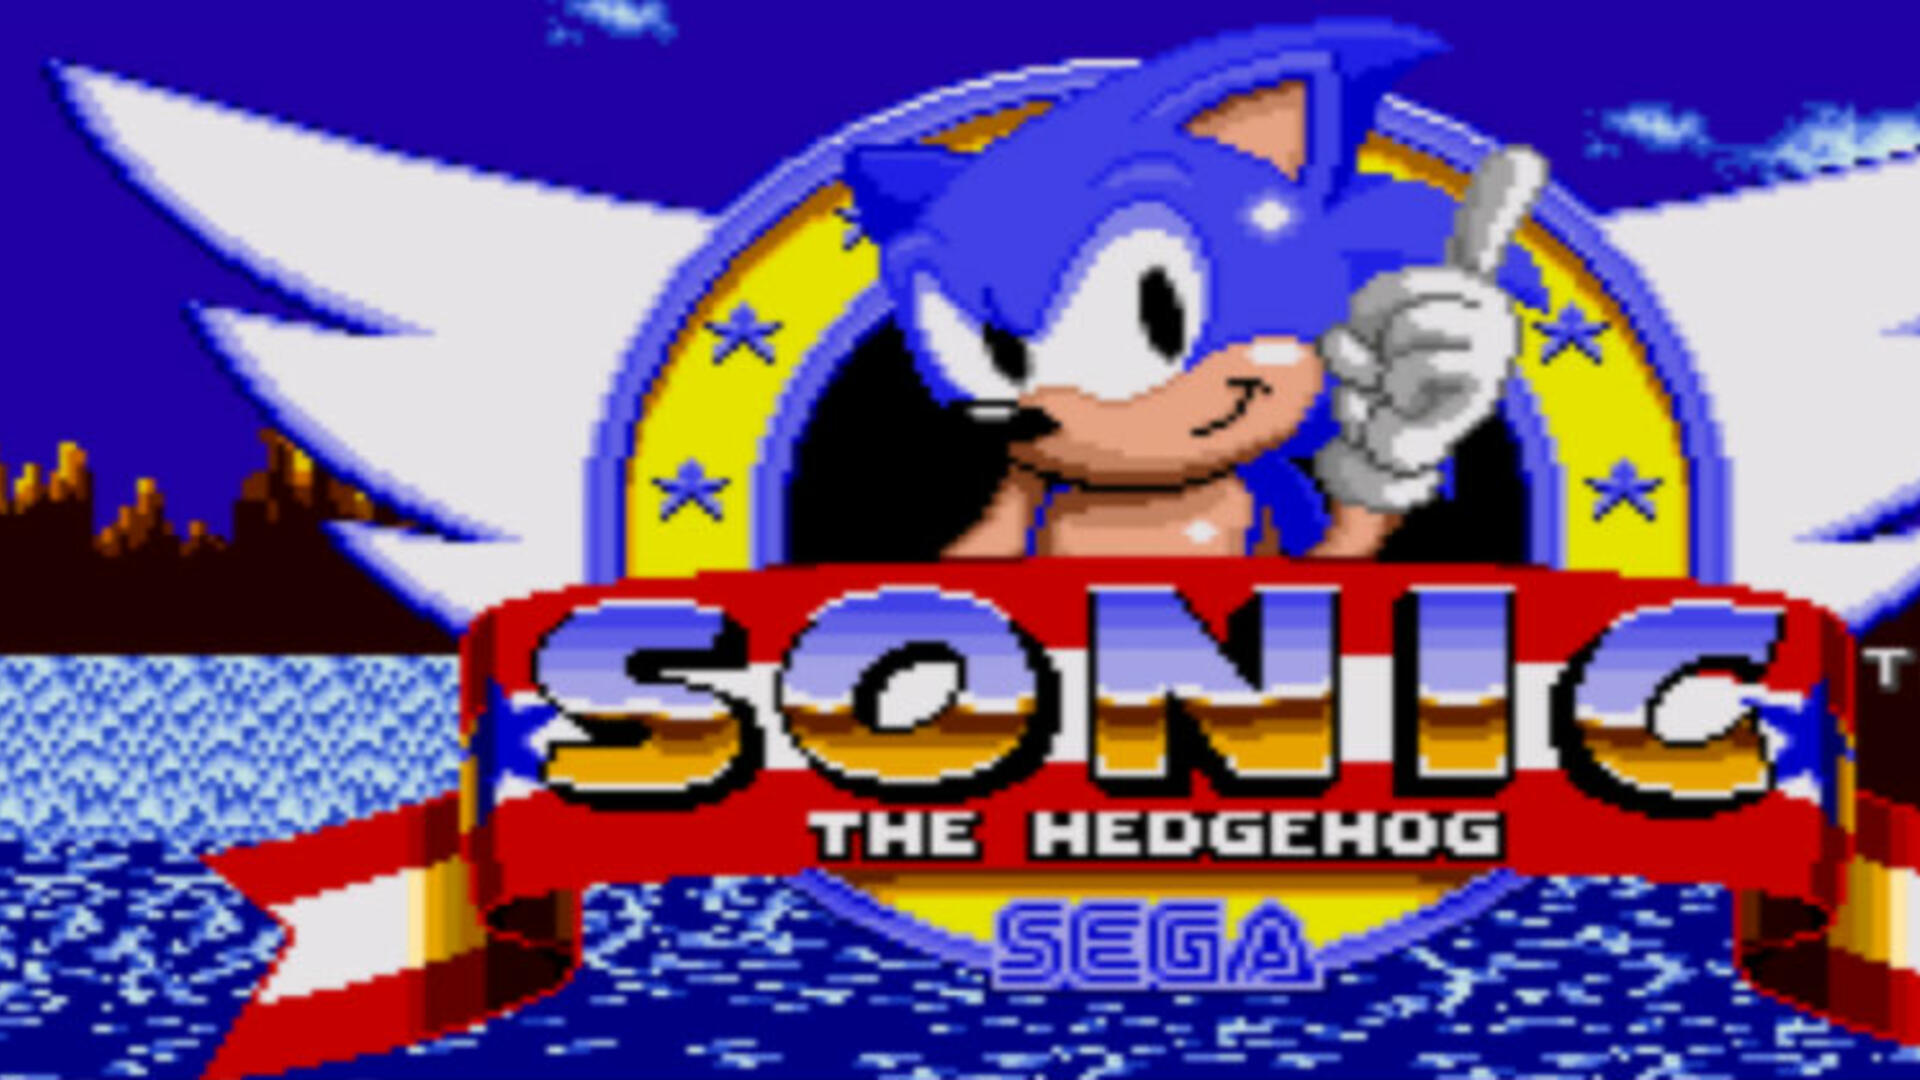 Sonic the Hedgehog's Mobile Outings Prove Stellar Action Games are Possible on Mobile Platforms